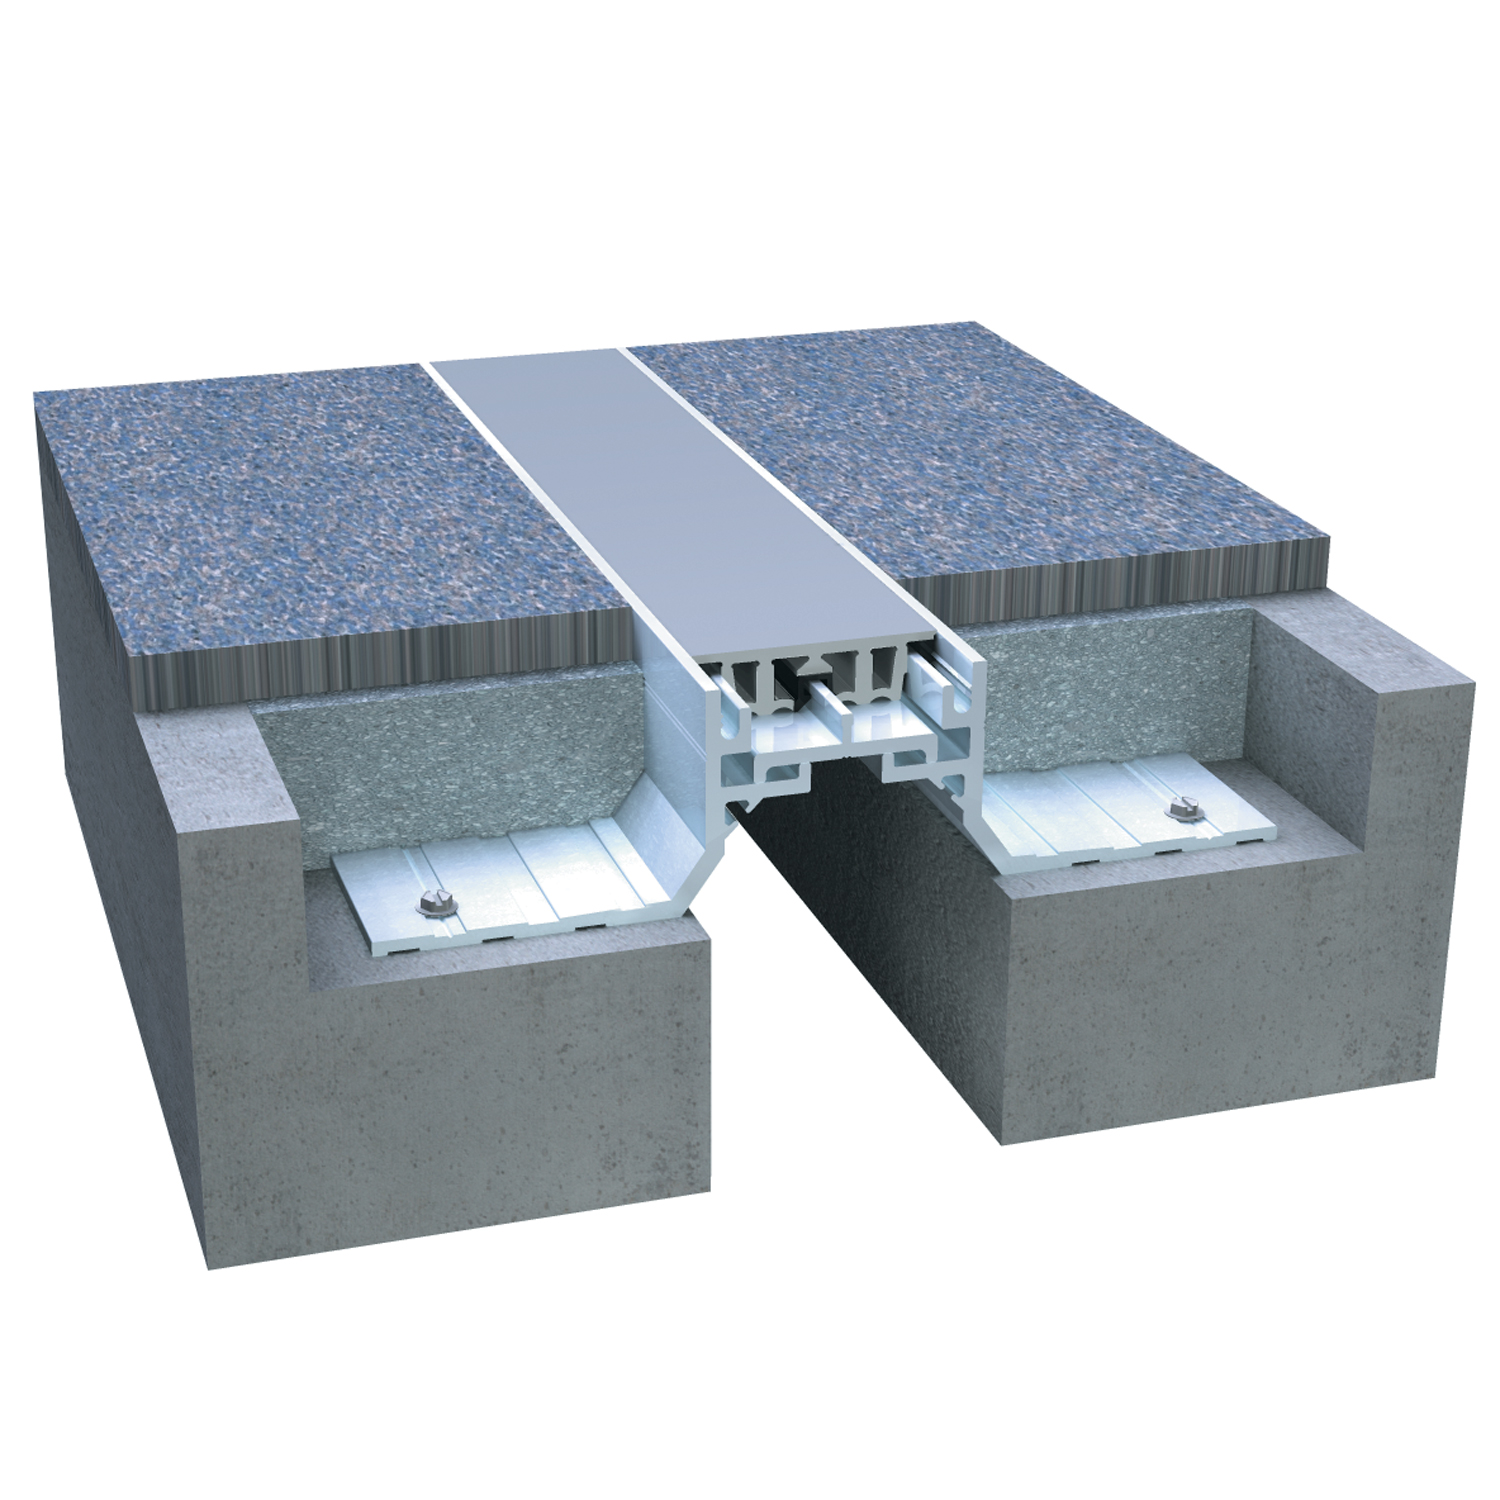 101 Series Floor Systems Expansion Joints